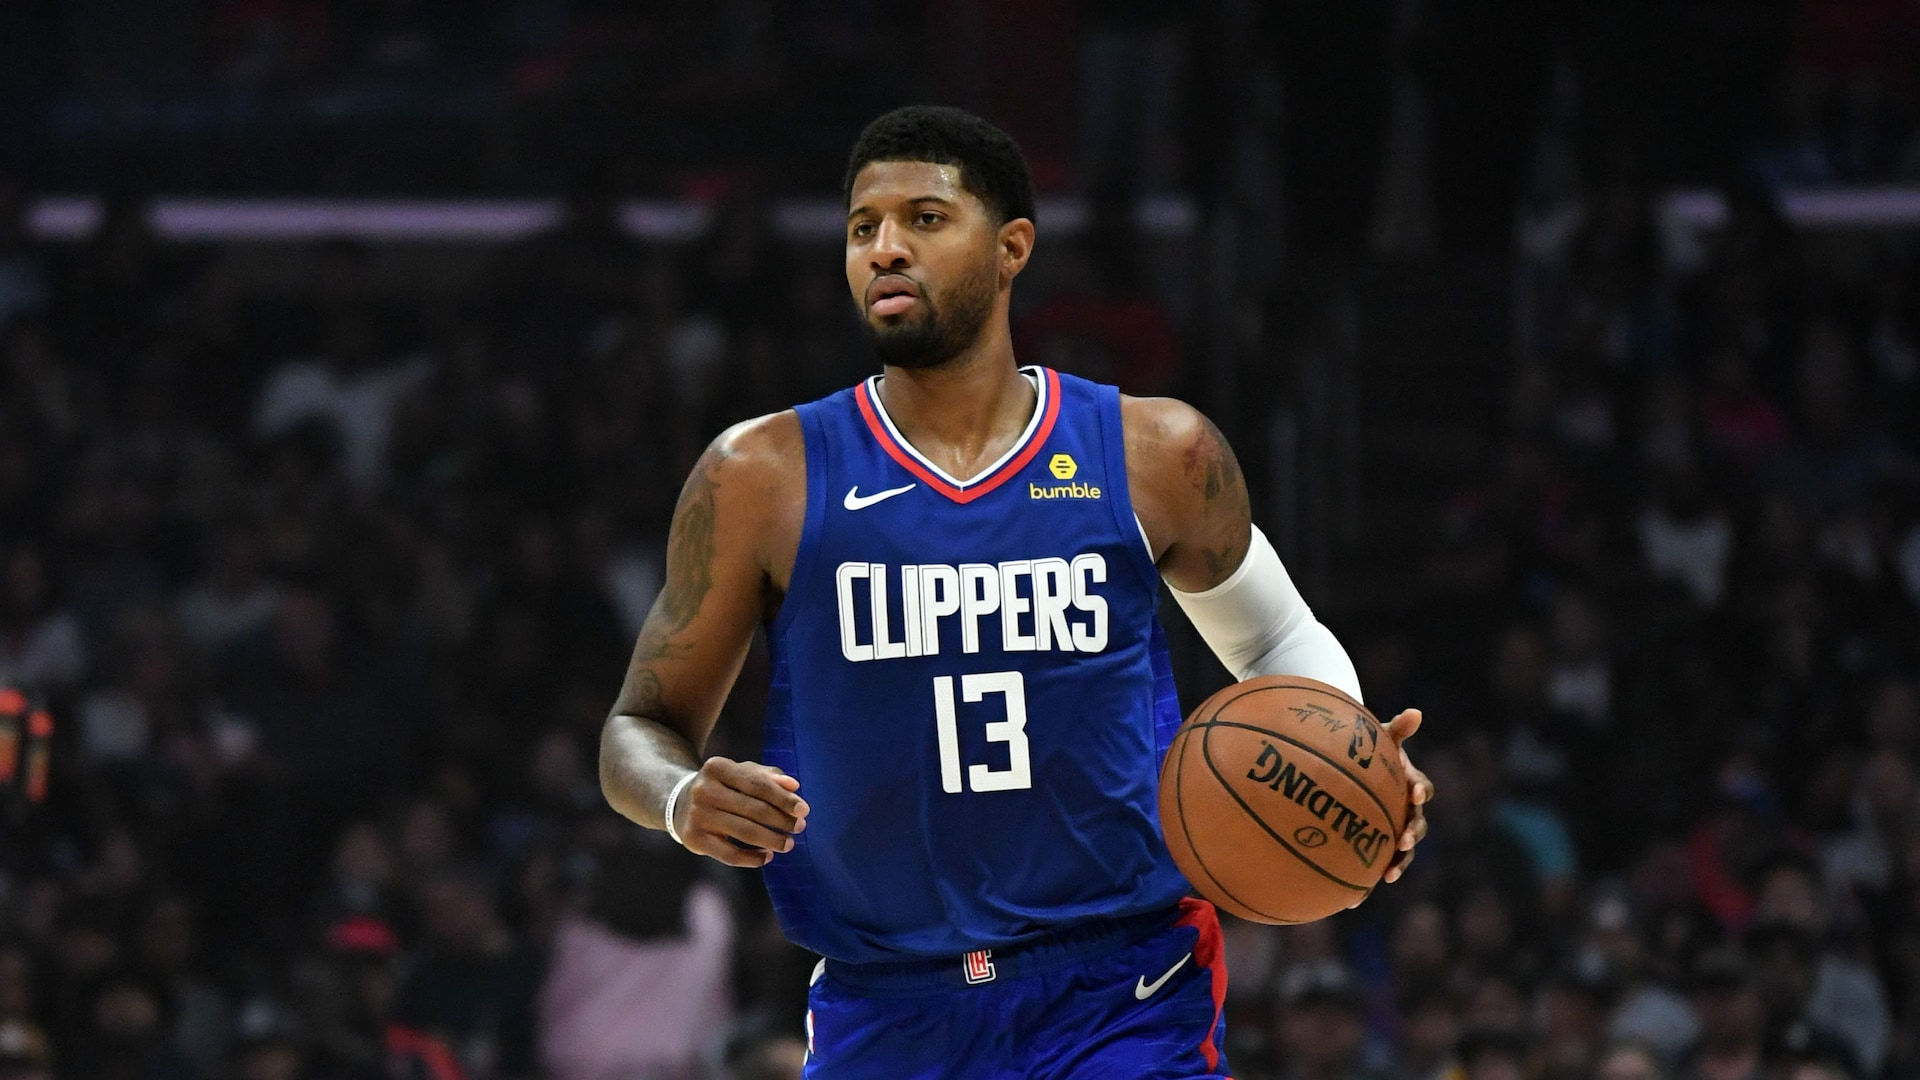 Clippers' George sits out game with strained hamstring